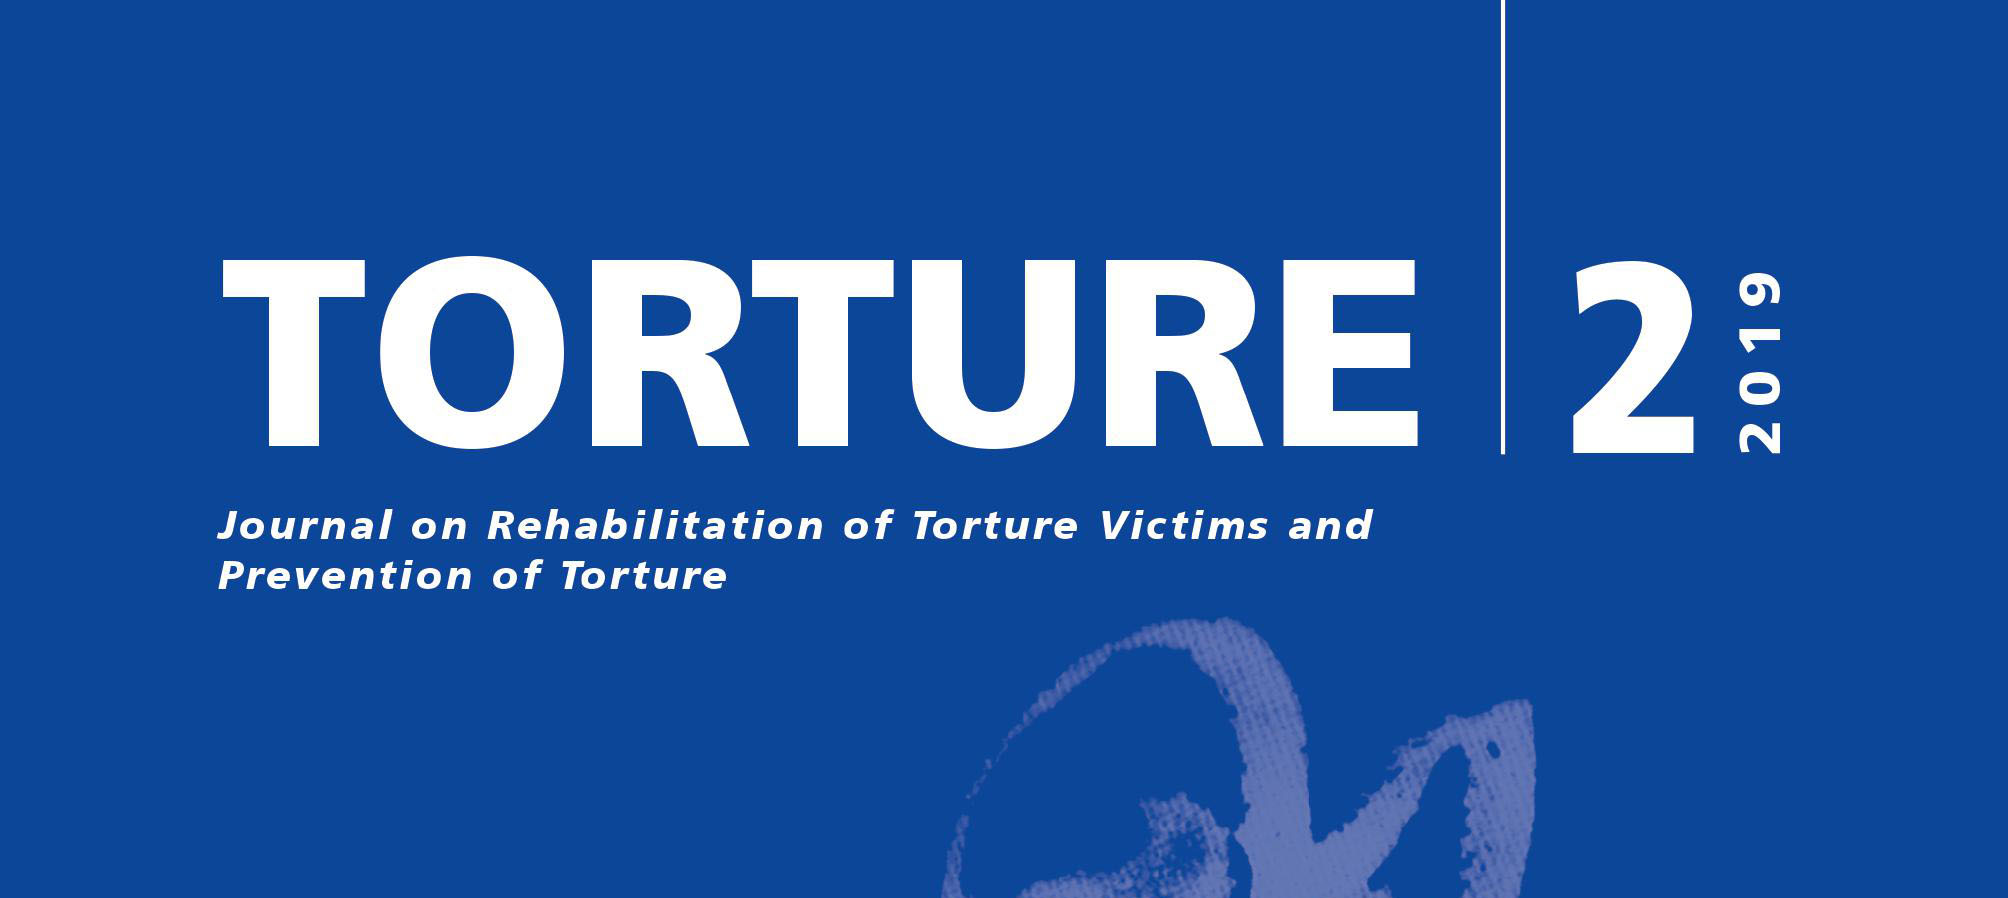 New issue of Torture Journal examines sleep deprivation as a method of torture